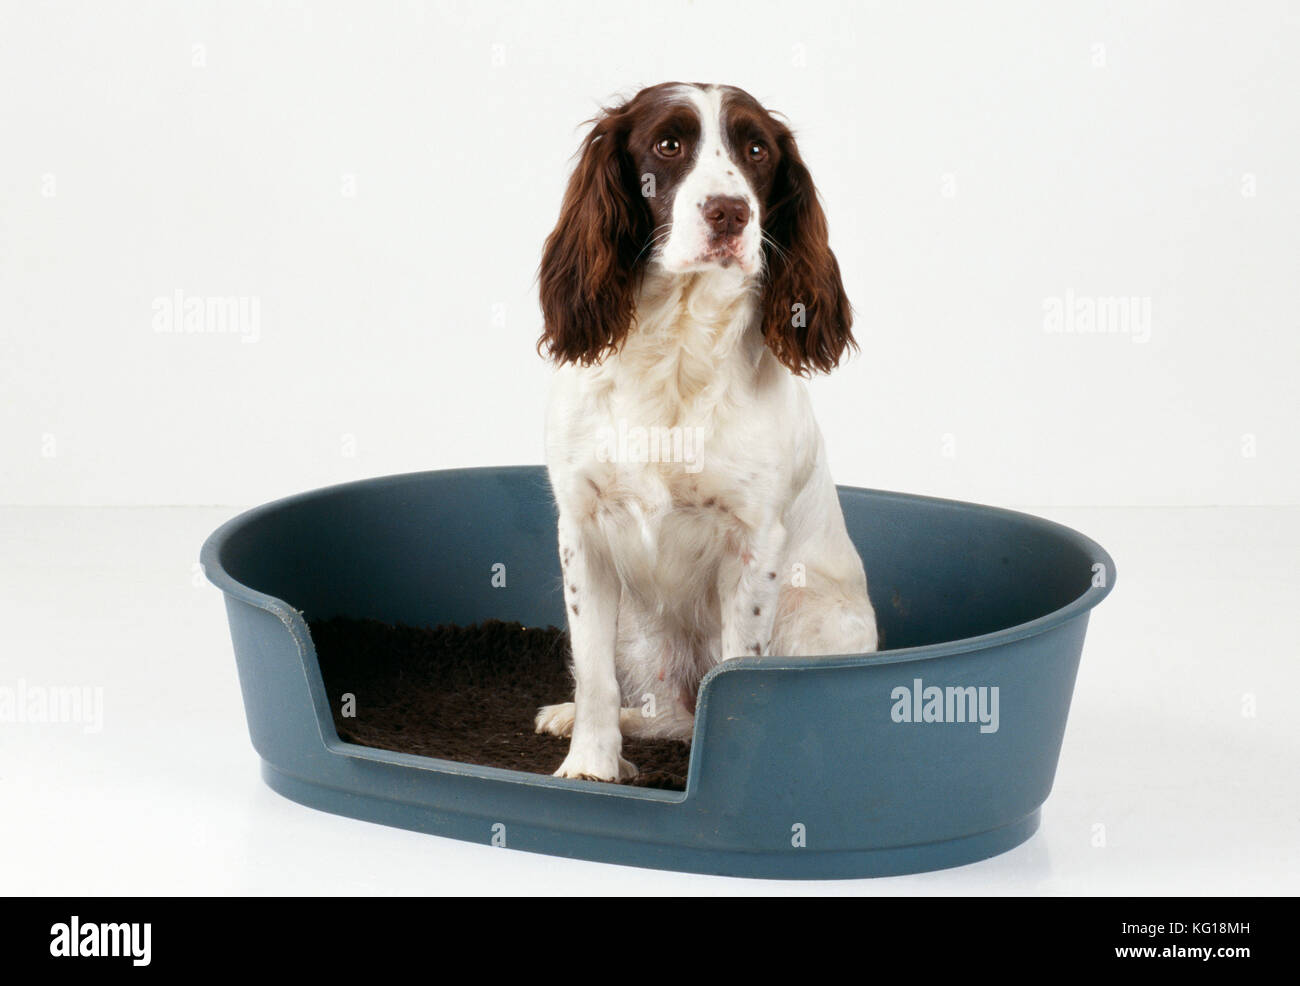 English Springer Spaniel Dog. Sitting in bed. - Stock Image